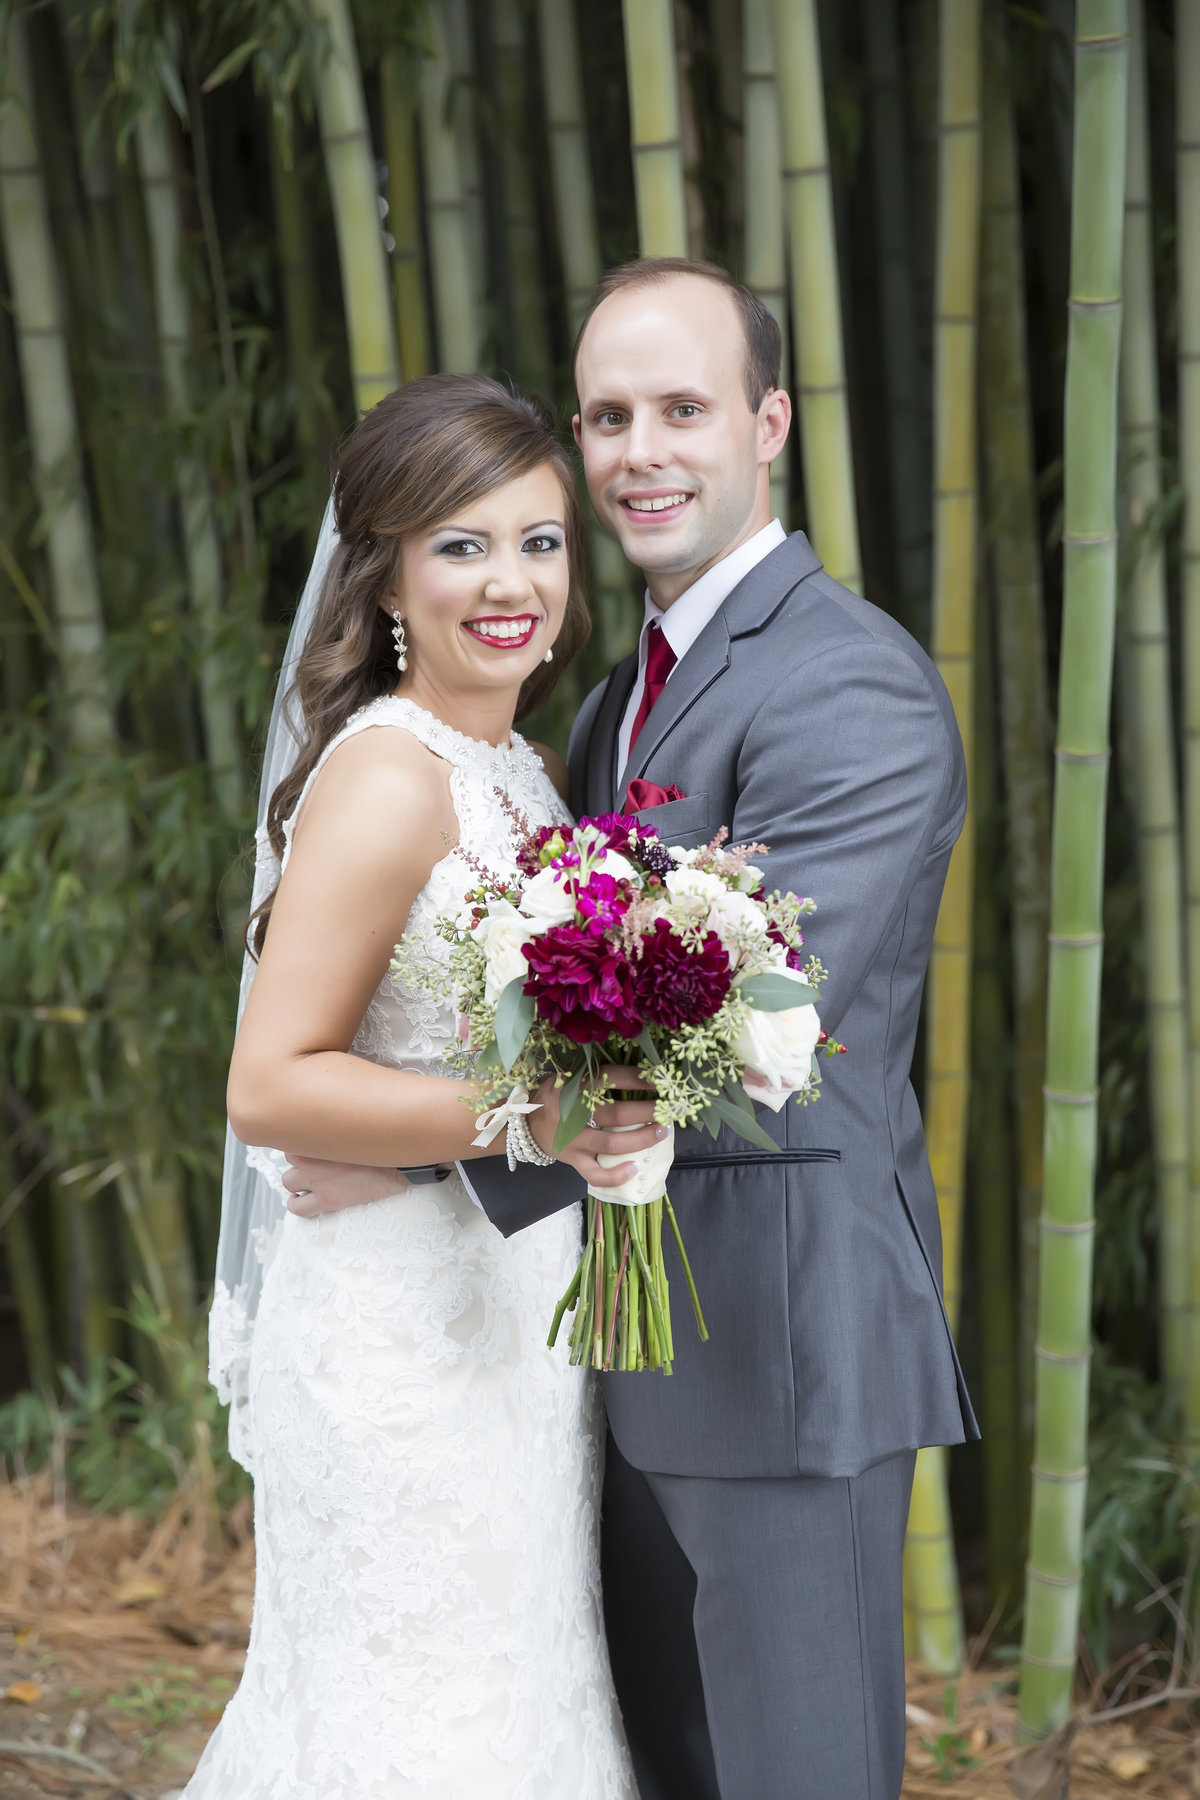 Bride and Groom at the Canebrake Country Club in Hattiesburg, Mississippi